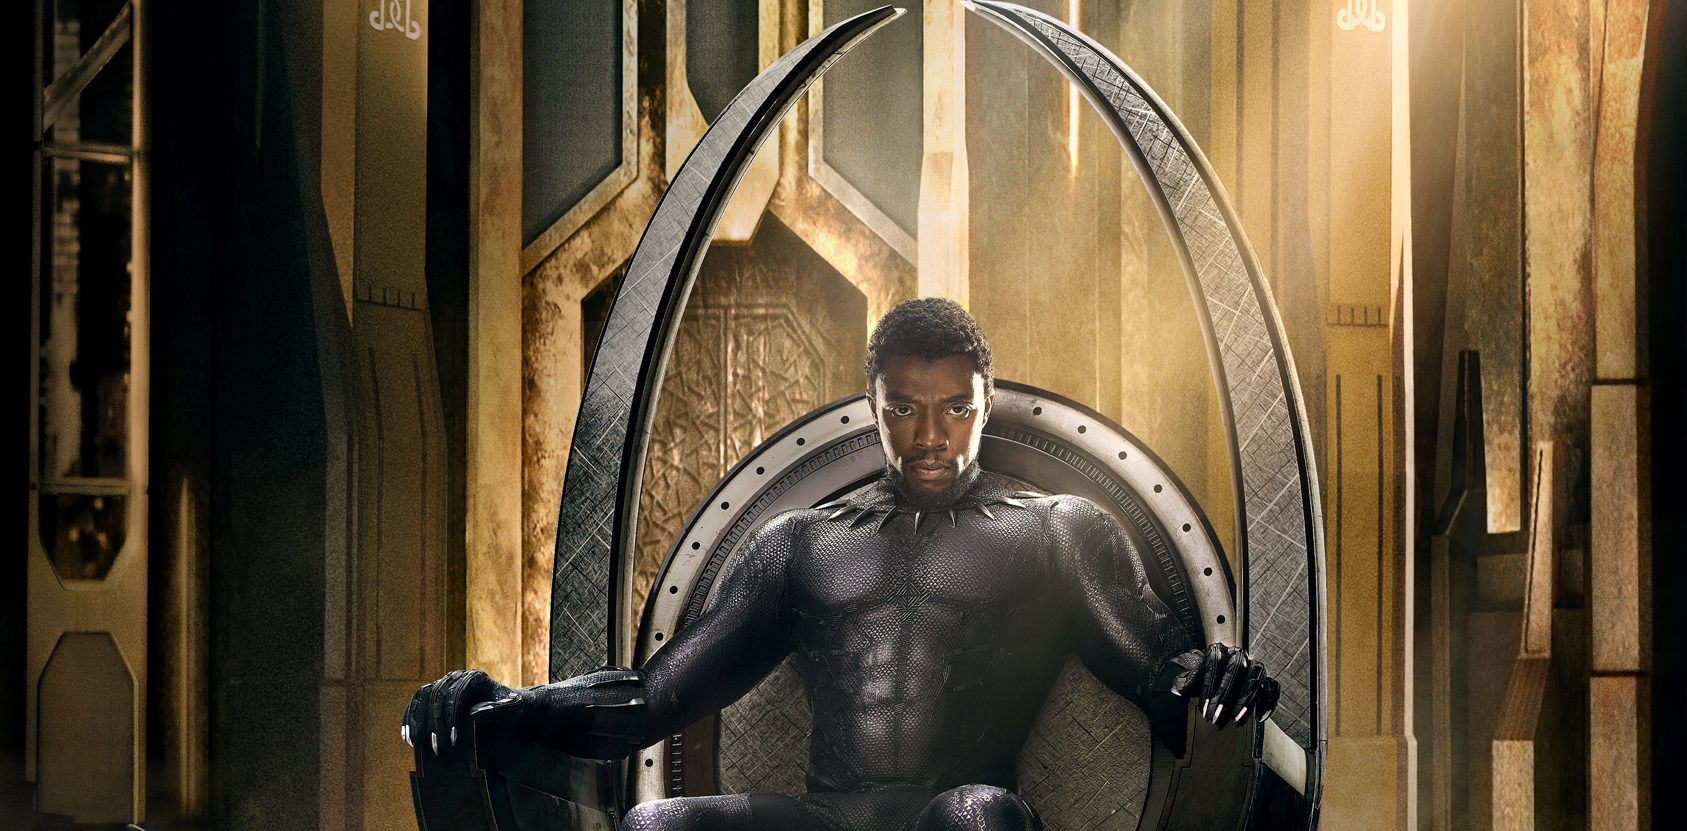 'Black Panther' Drops the Snark and Gets Real